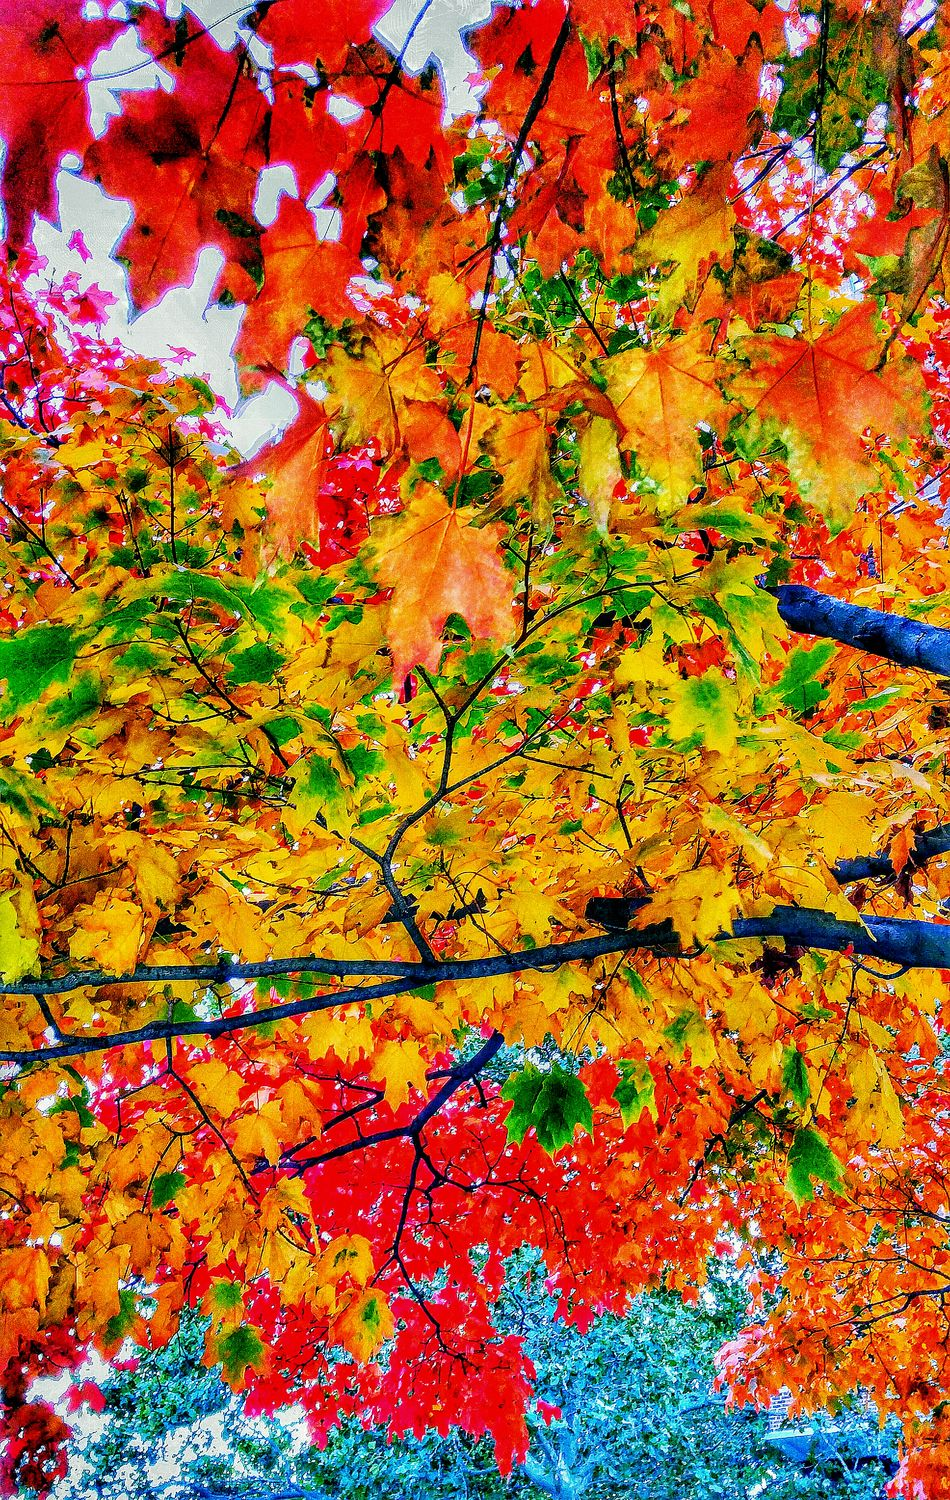 Fall Colors Tree Branches Autumn Leaves In The City Multi Colored Orange Color Red Autumn Abstract Yellow Change Backgrounds Leaf Growth No People Nature Tree Close-up Beauty In Nature Day